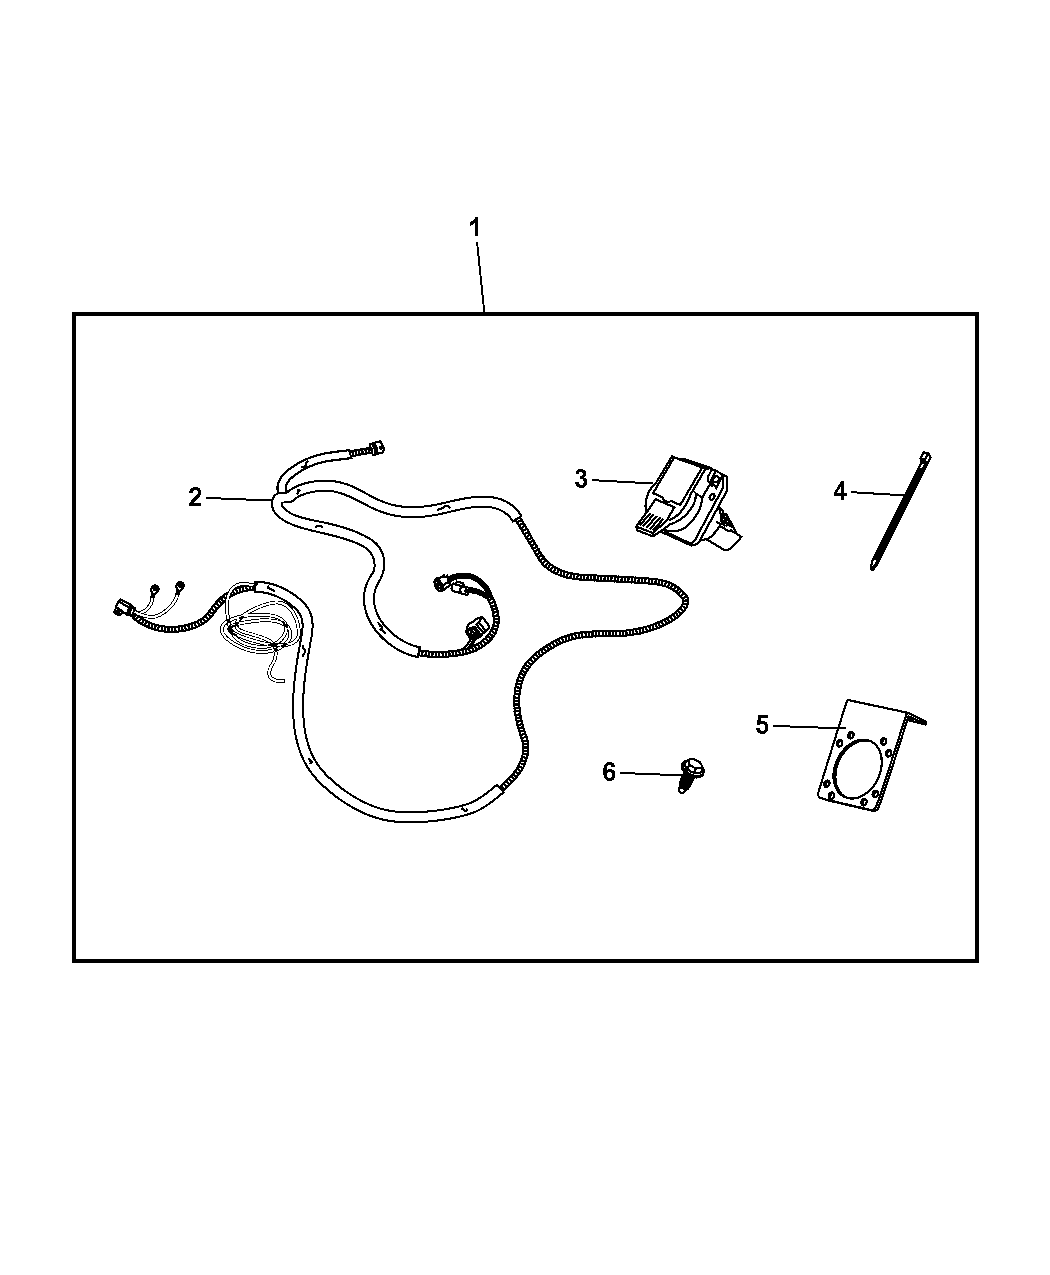 2011 Jeep Wrangler Wiring Kit - Trailer Tow